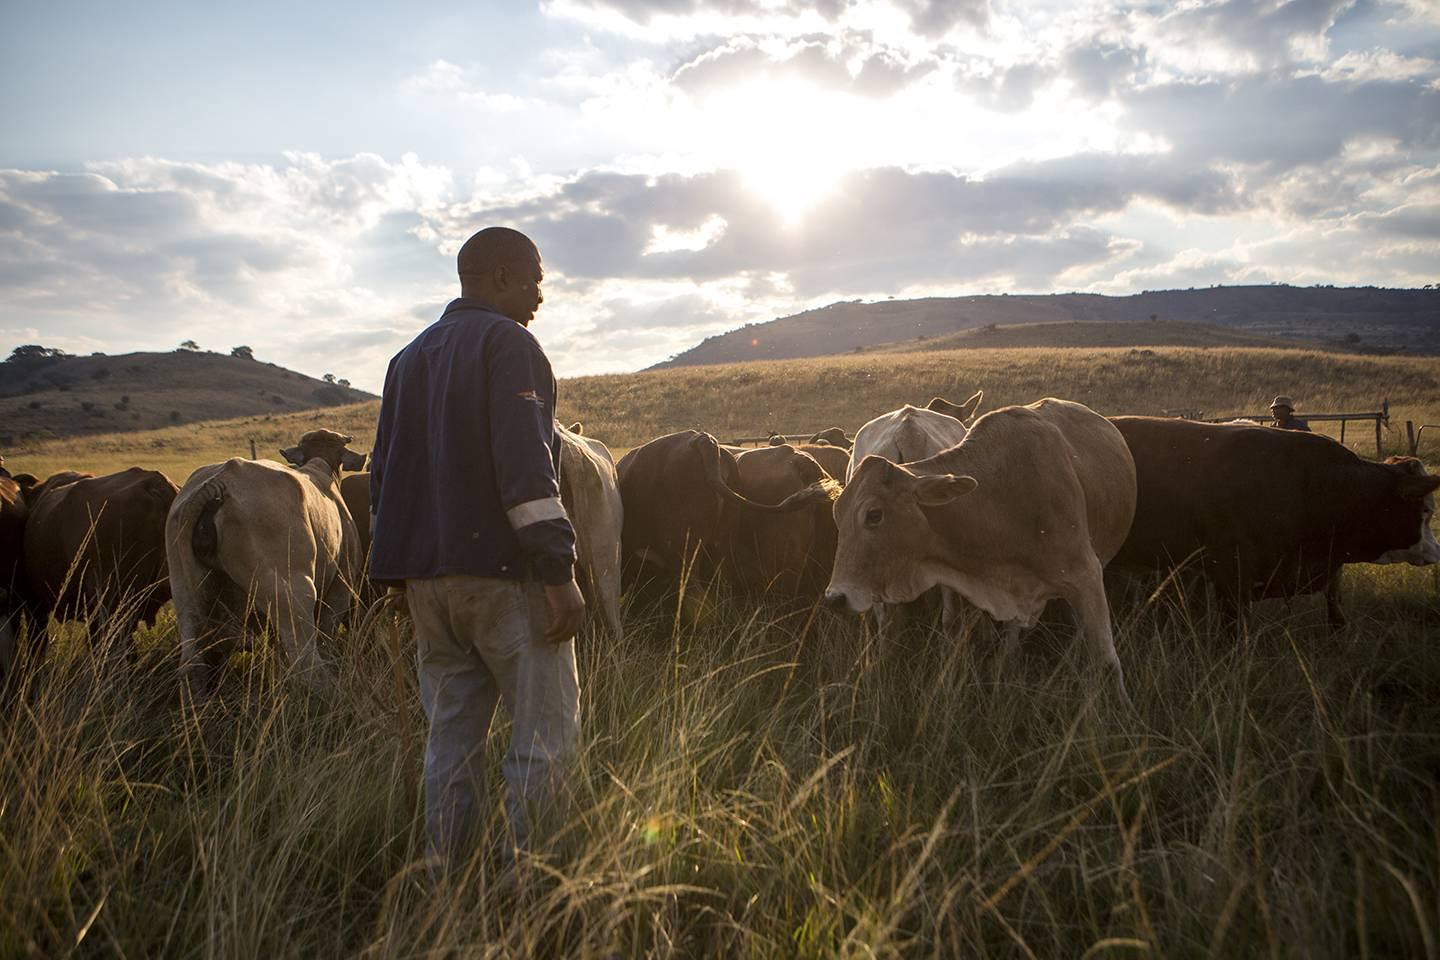 Mhle Msimang with his cattle.